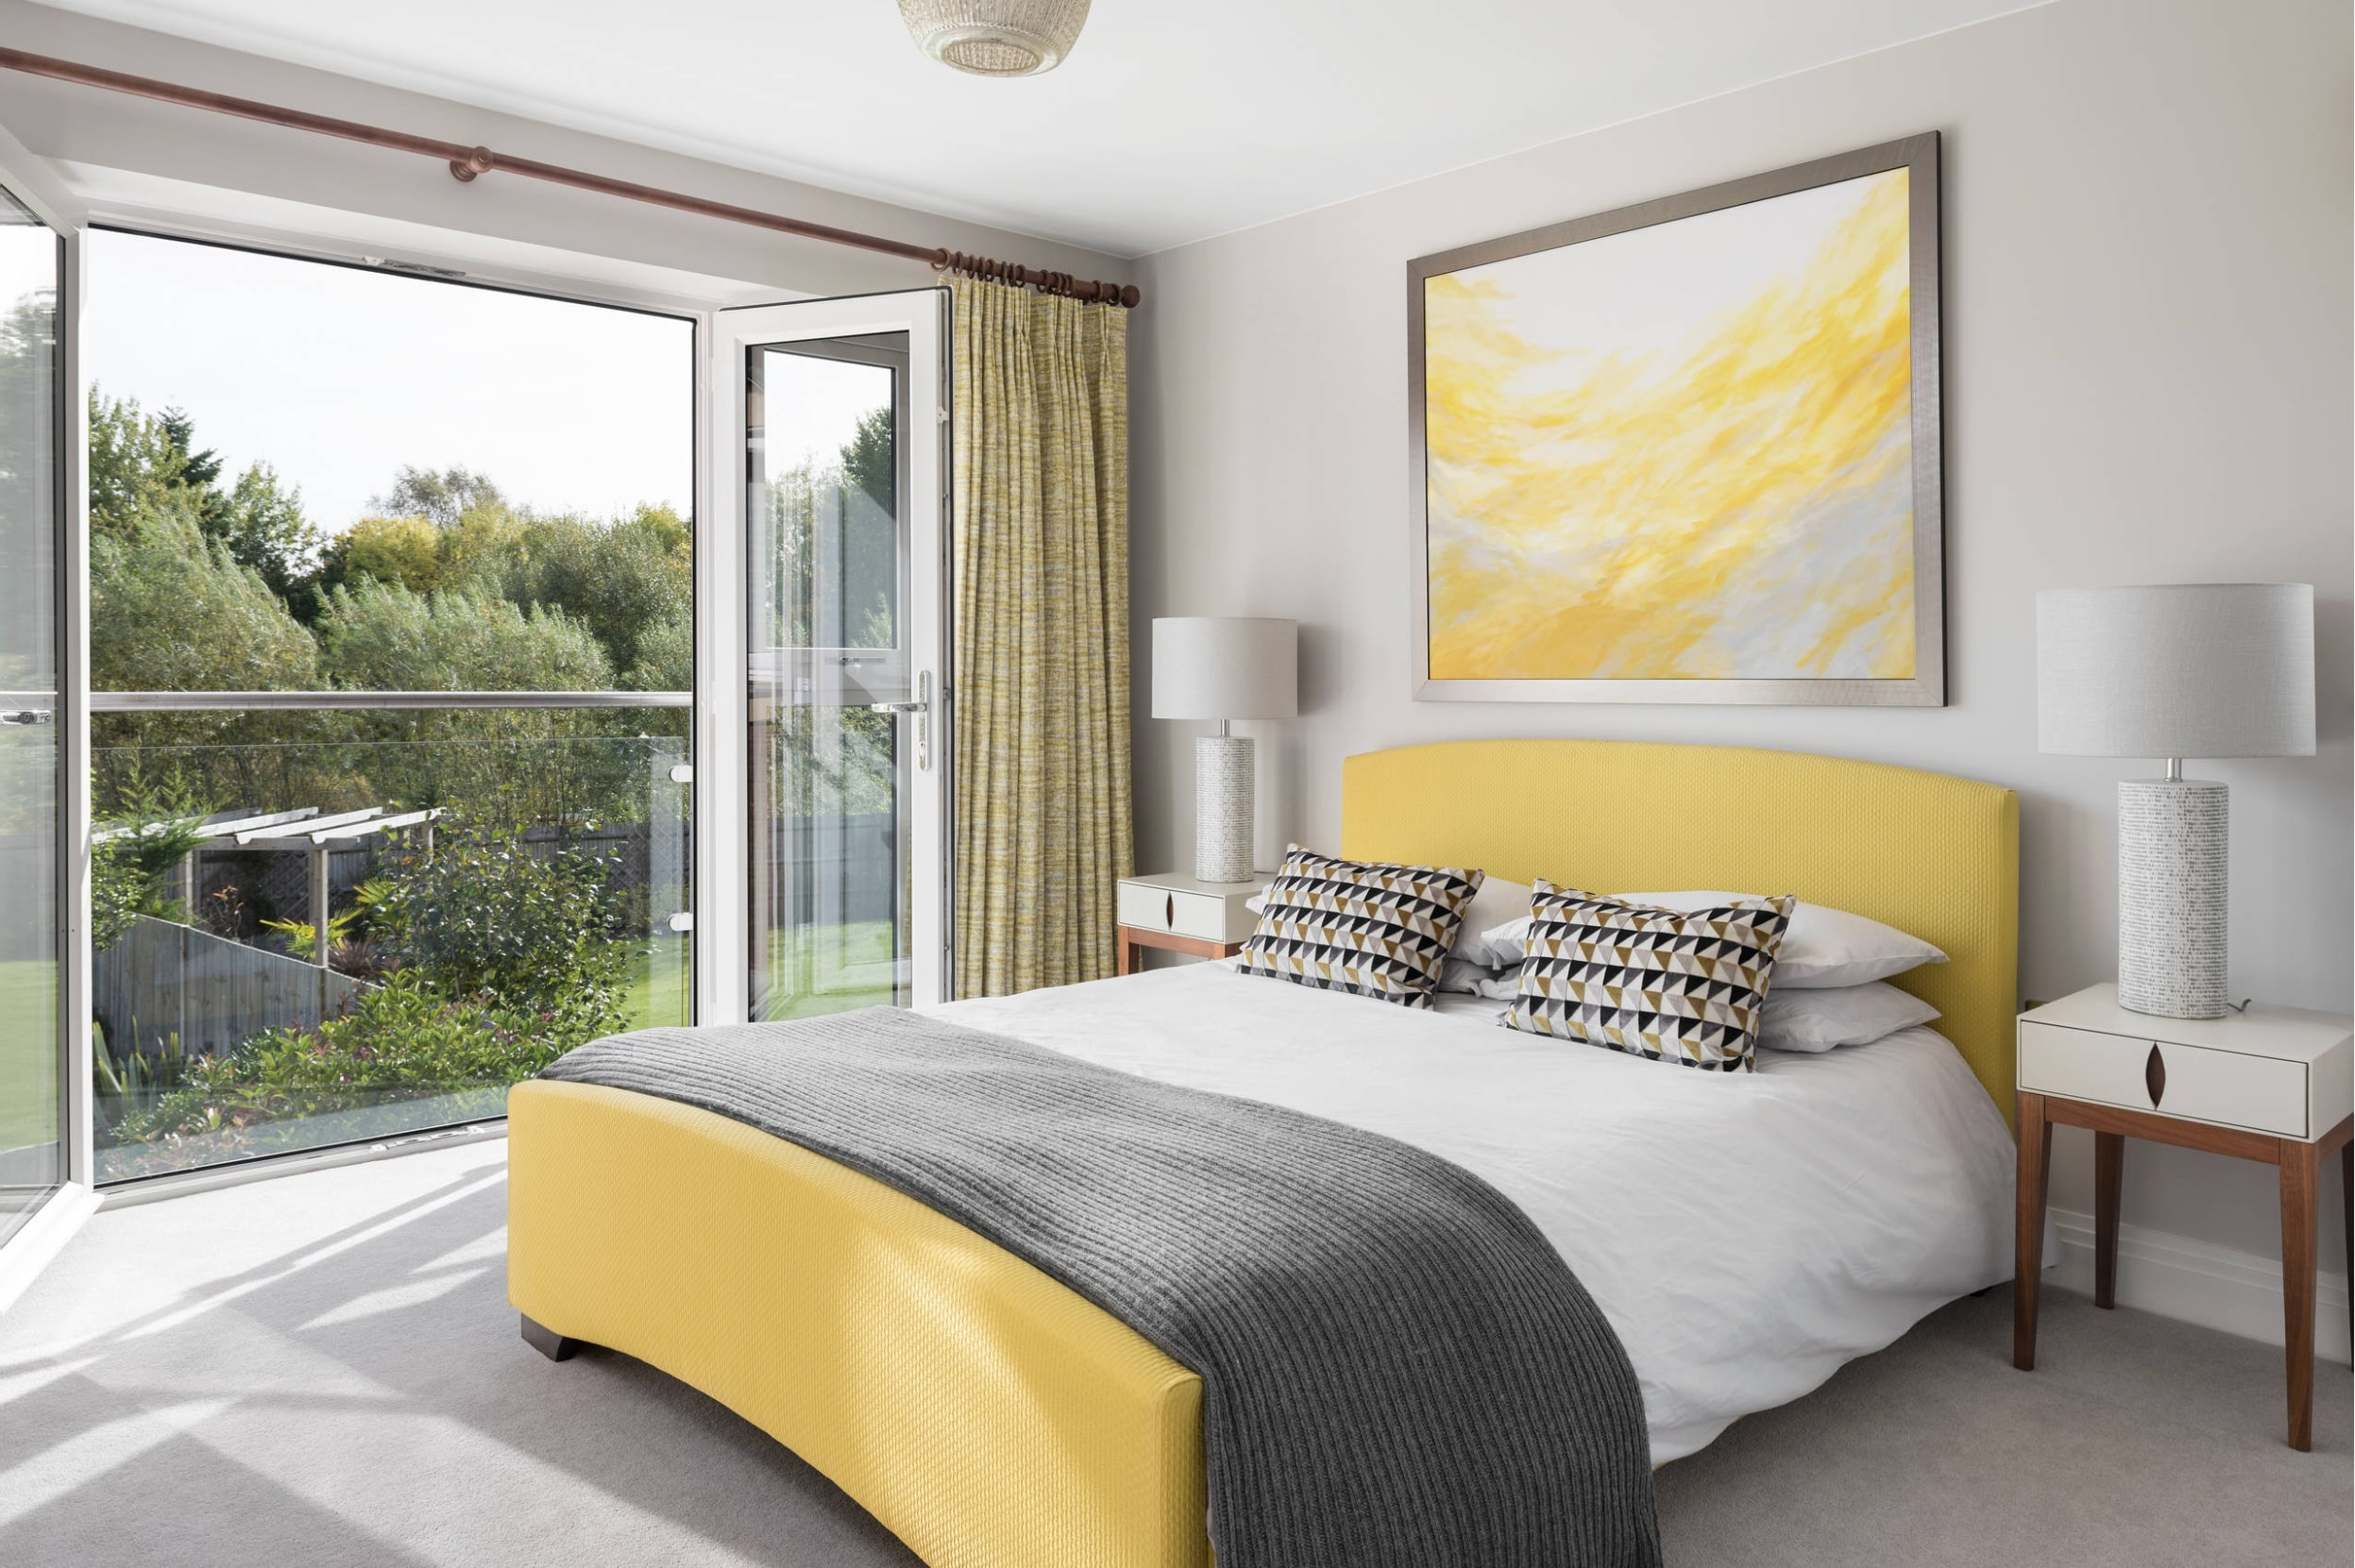 f8-1 How to create a Feng Shui bedroom layout with little effort